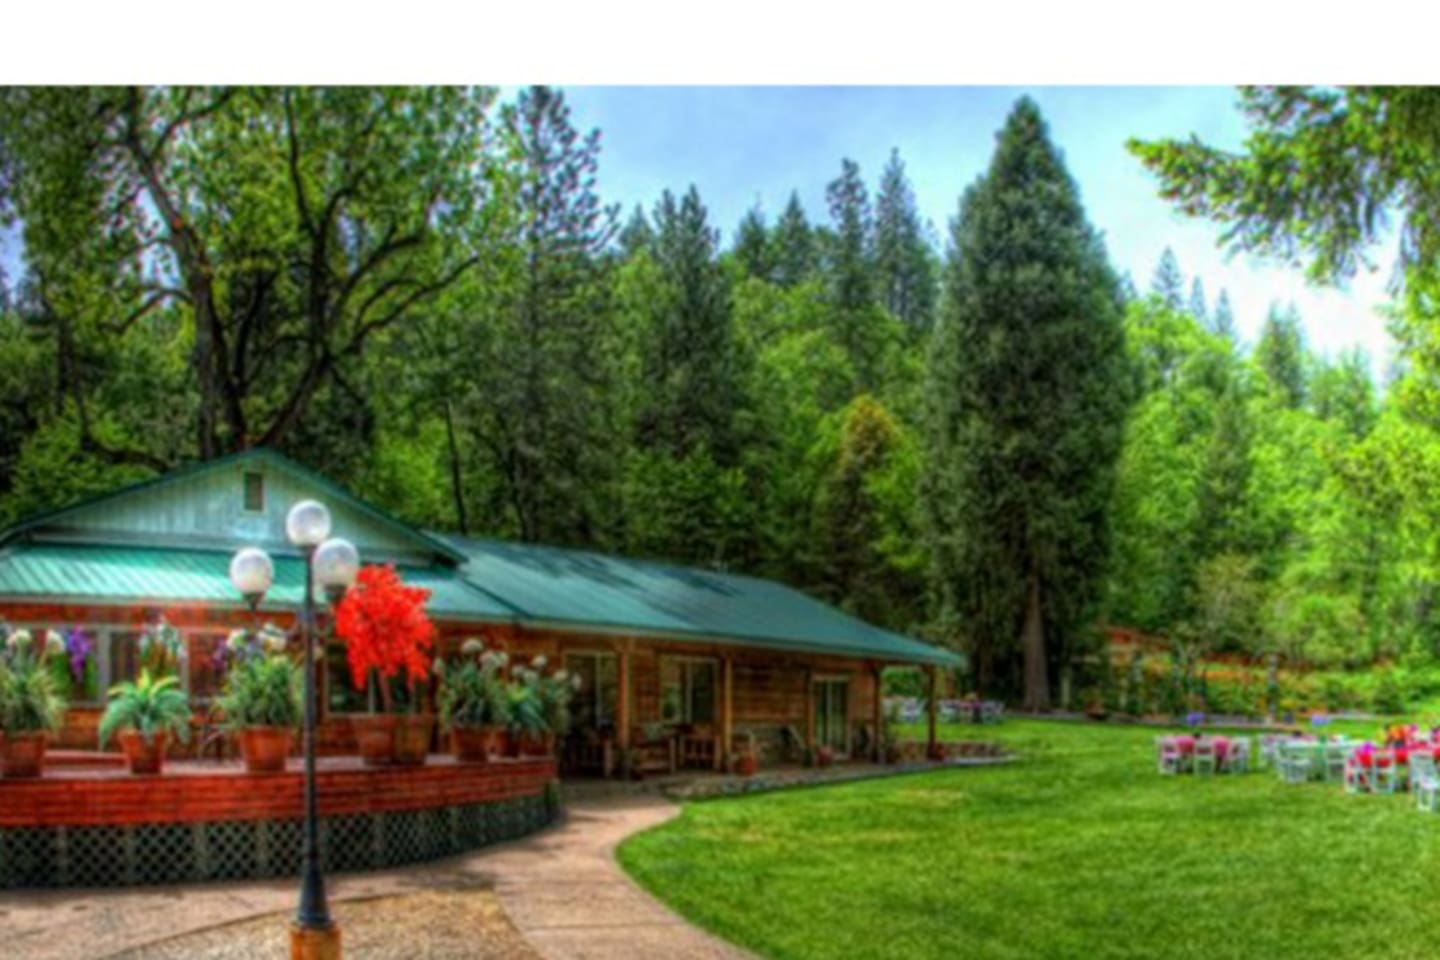 Surrounded by breath-taking national forestry, a day spent at House on the River is an escape from the busyness of everyday life.  Set on its own private land mesa within a river canyon, it is the only property on the river for 25 miles. With its unmatched view of the river, it is Shasta County's premier outdoor wedding venue. Being only five miles from Shasta Lake, boating, and plenty of other water activities also makes it a unique vacation rental. House on the River creates an unforgettable setting for events whether it's a wedding, reunion or family vacation.